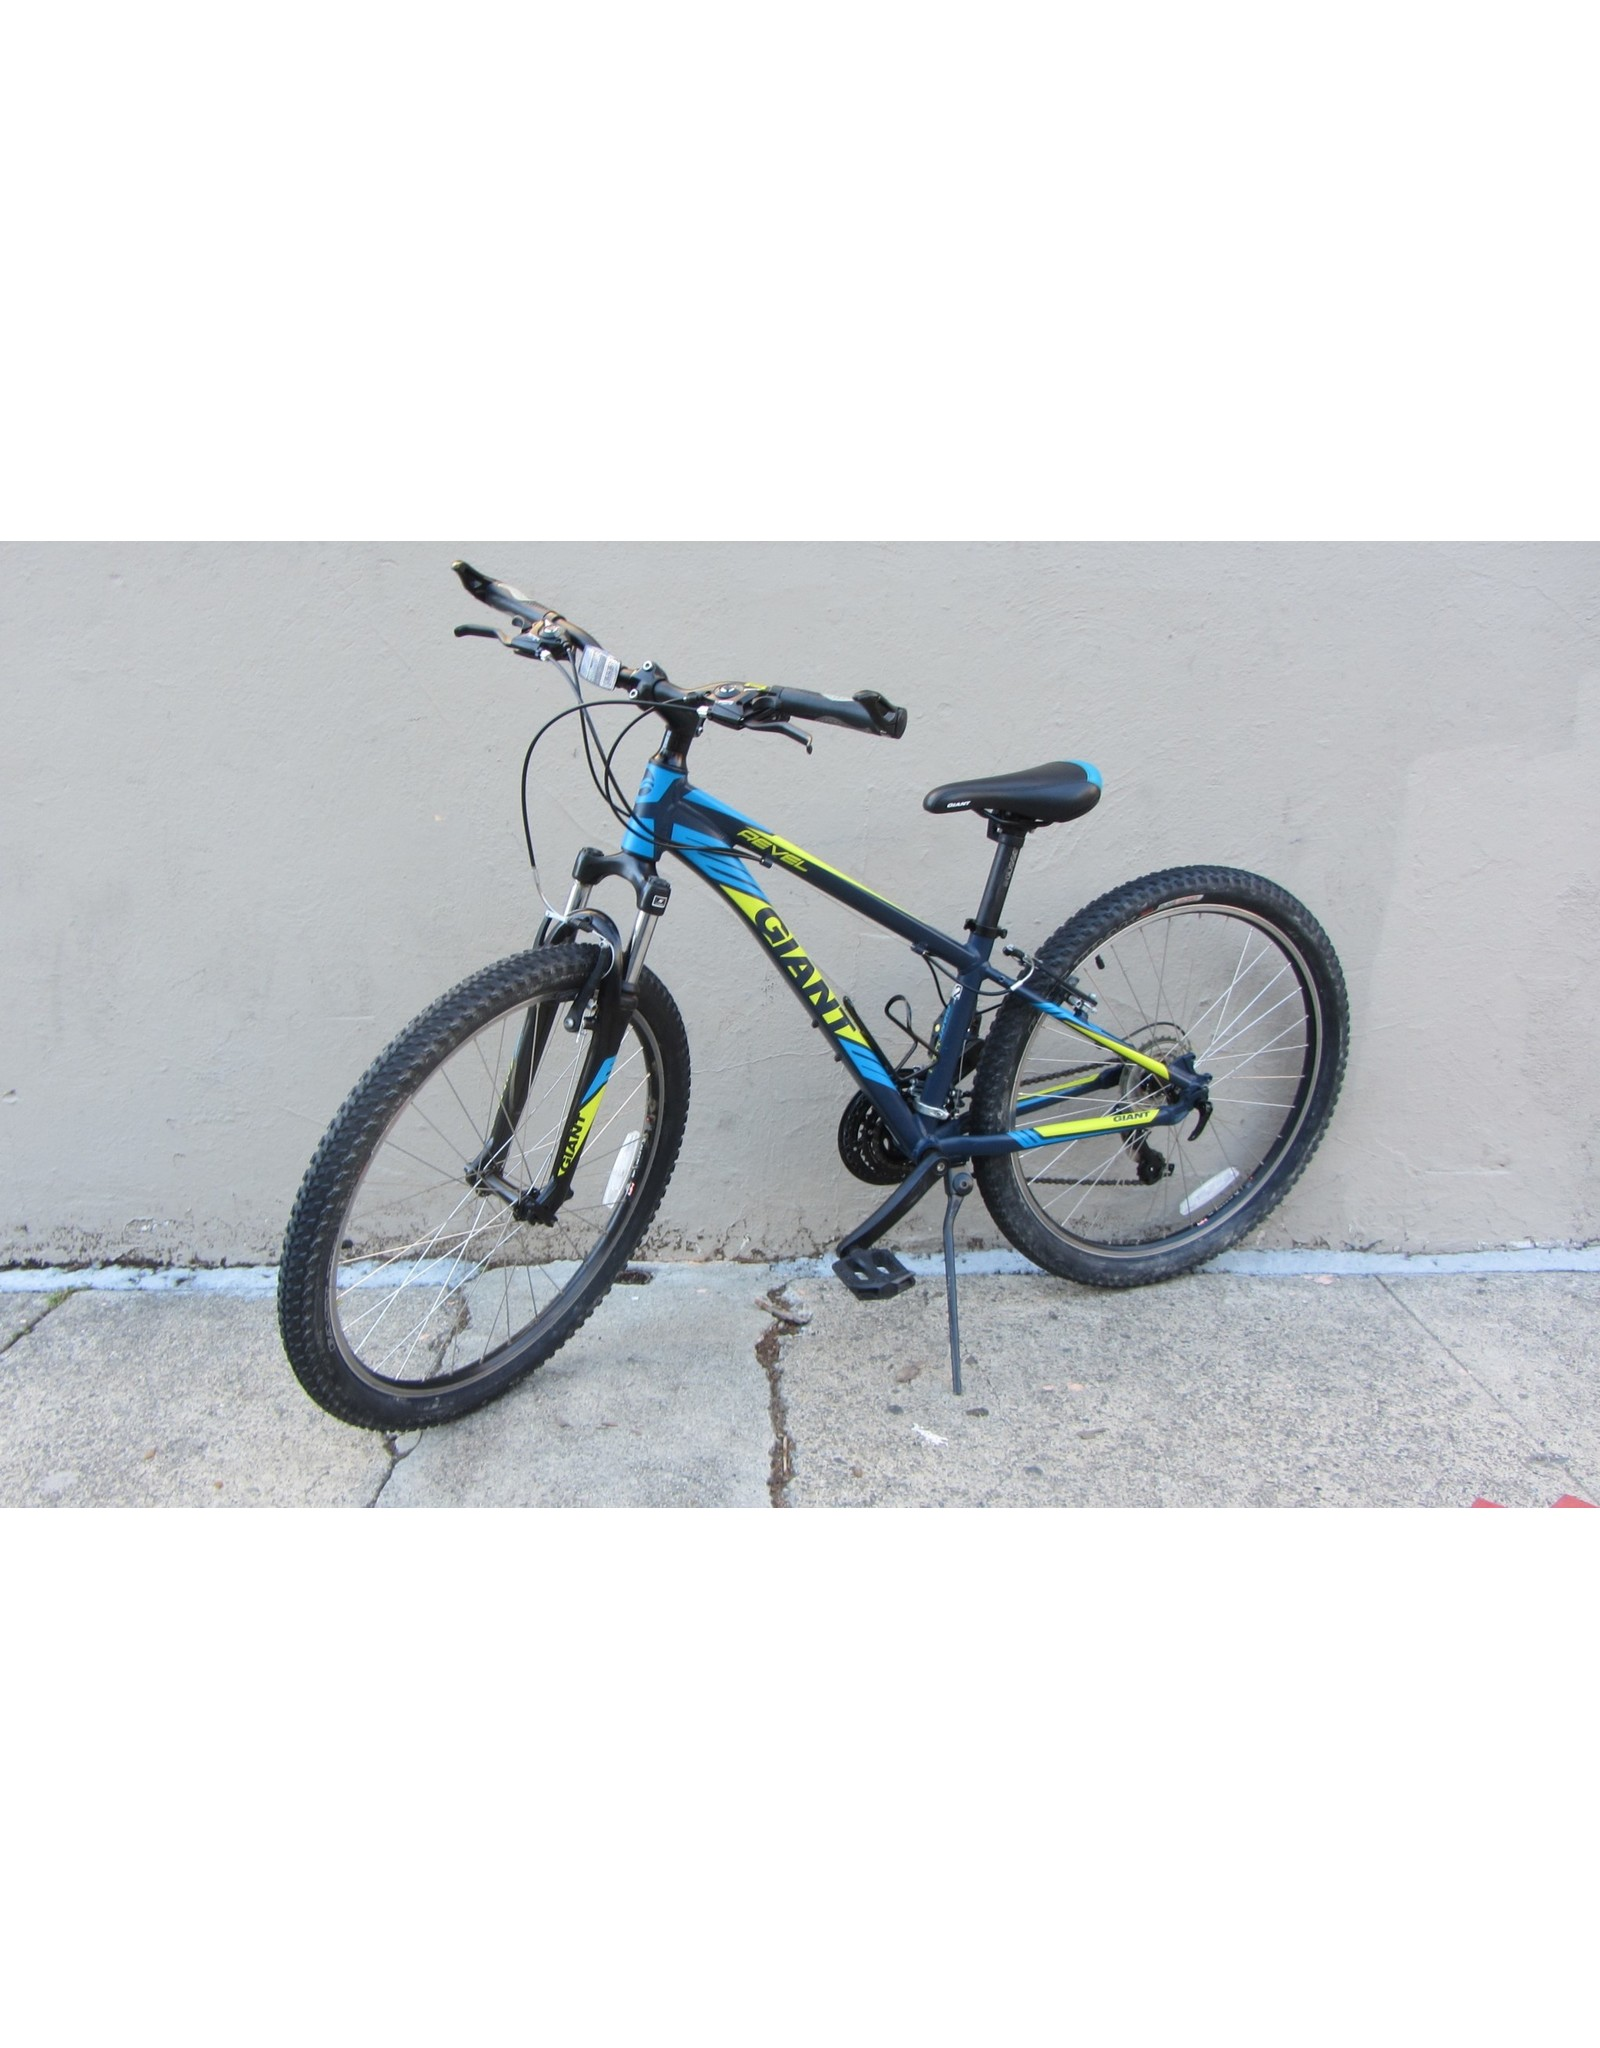 Giant Giant Revel 2 , 2018, Blue Green, 13 Inches